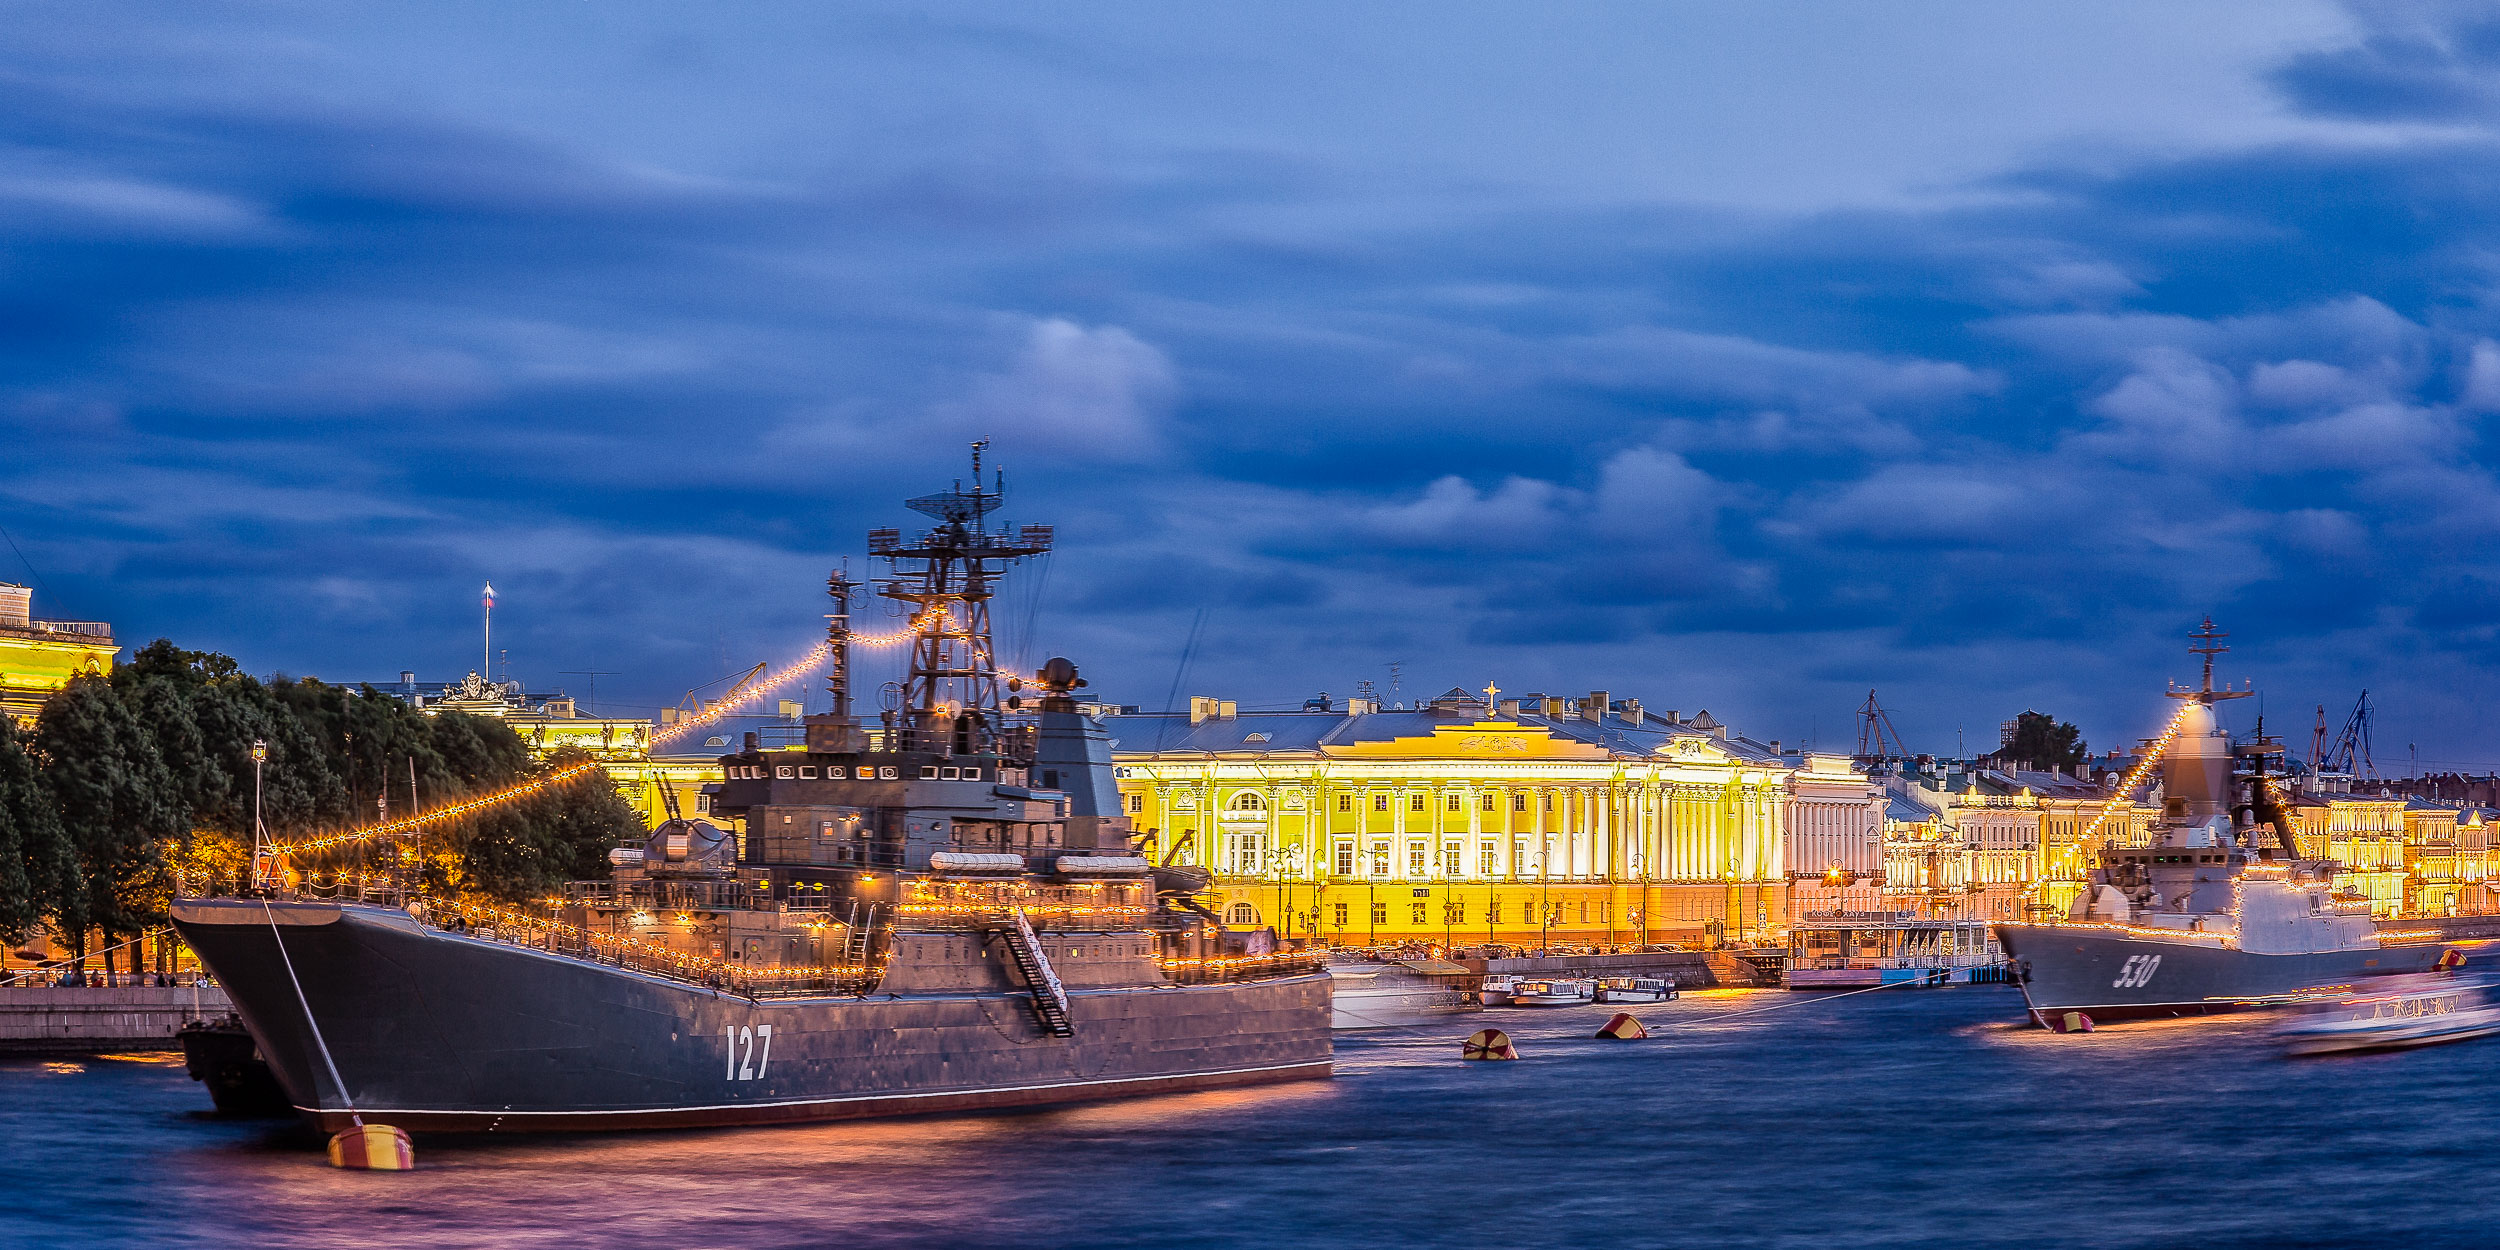 Battle ships  cruise up to the  Palace Bridge  on the  River Neva  on a warm summer night in beautiful  St. Petersburg, Russia